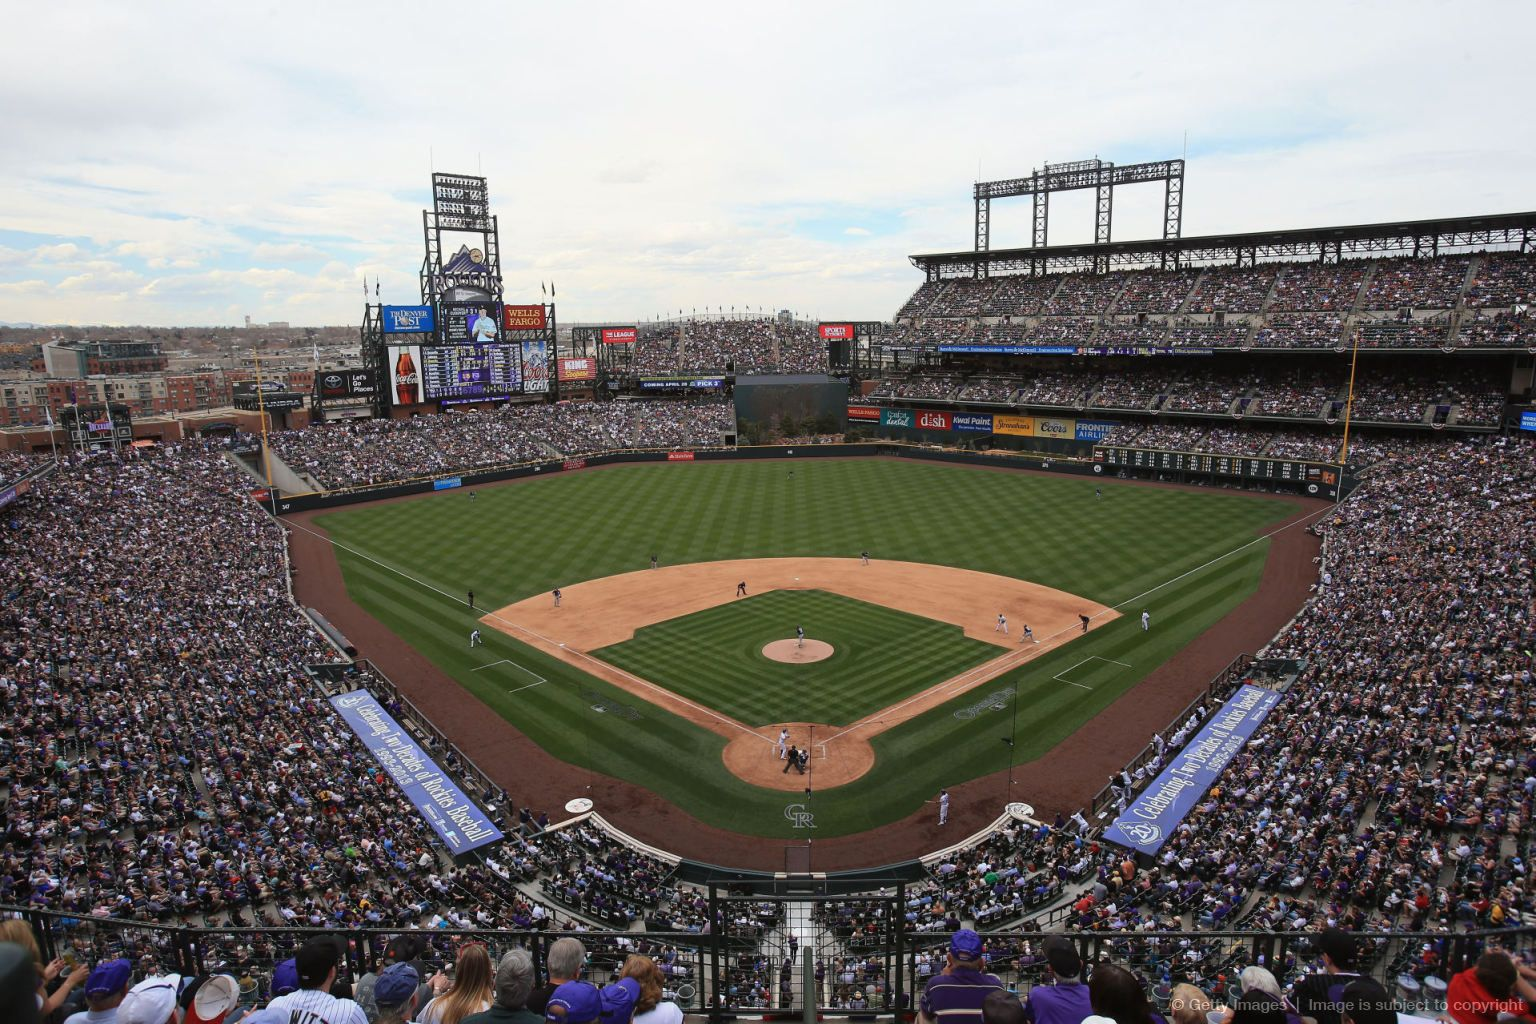 San Diego Padres V Colorado Rockies Home Opener Packed House 4 5 13 Colorado Rockies Rockies Baseball Baseball Park